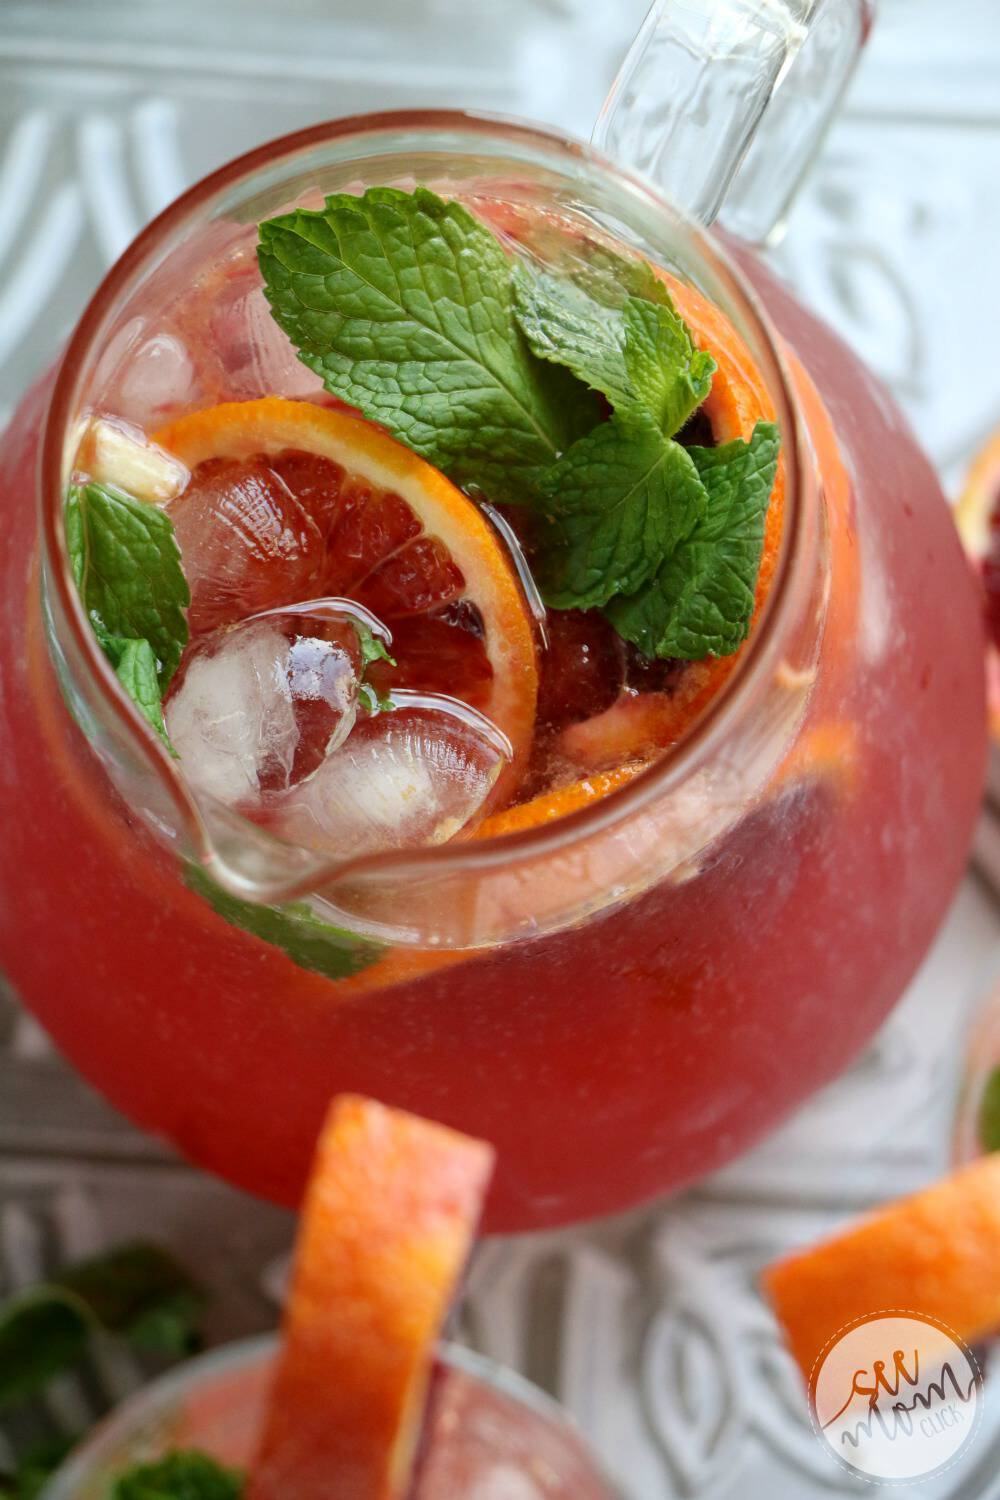 I have your new favorite blood orange cocktail right here! This Blood Orange Mimosa recipe is so easy to make and just delicious. It's perfect for party drinks or holiday celebrations. Cheers!